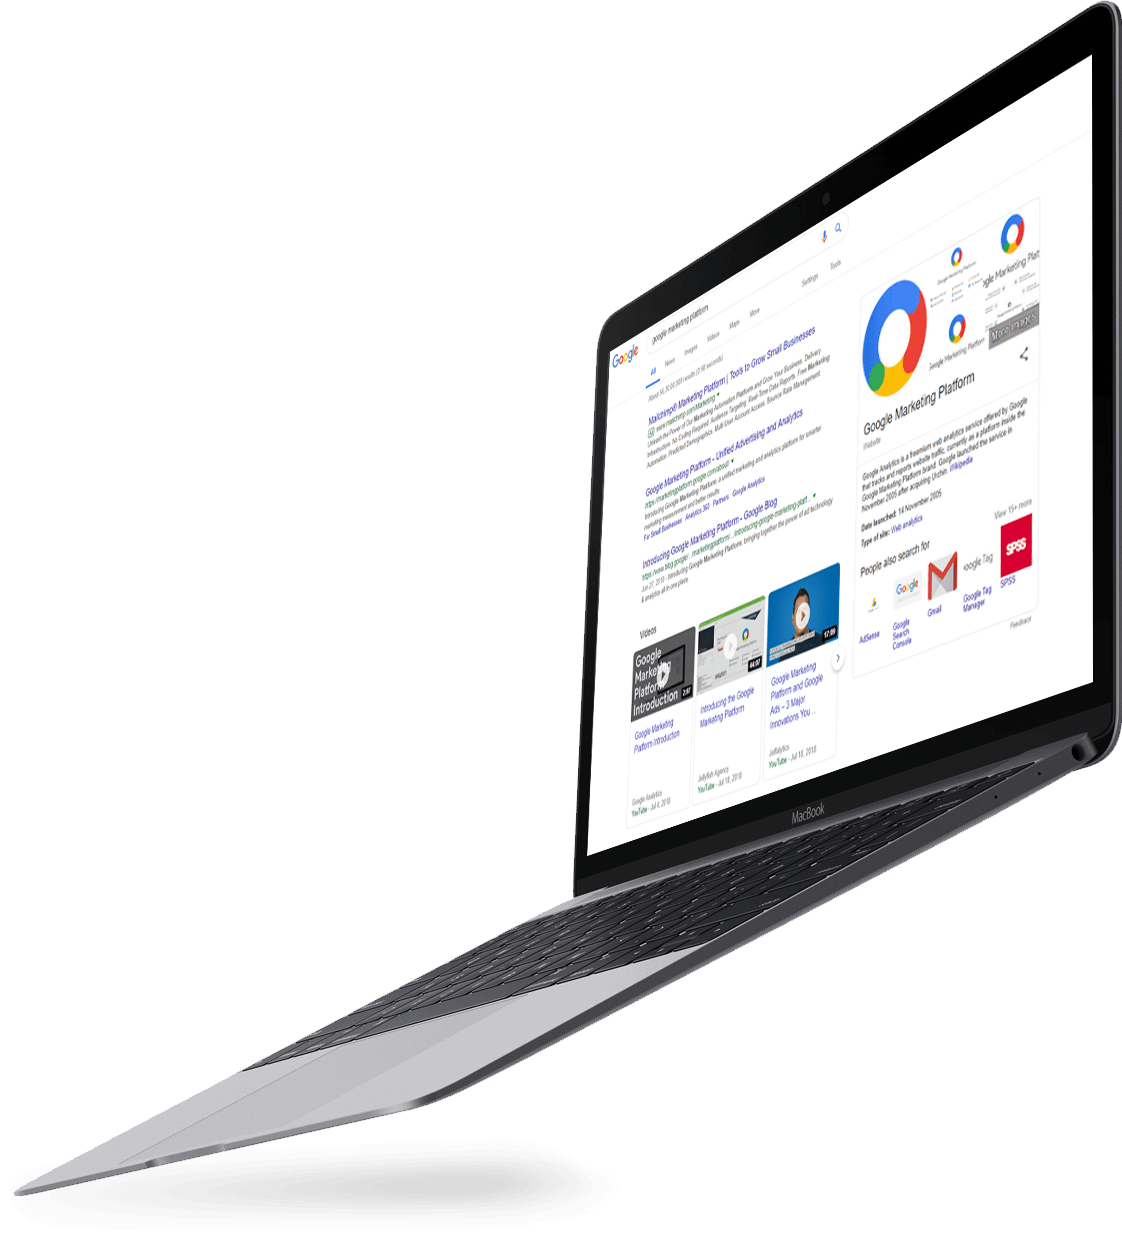 Laptop displaying Google Analytics for Palo Alto business